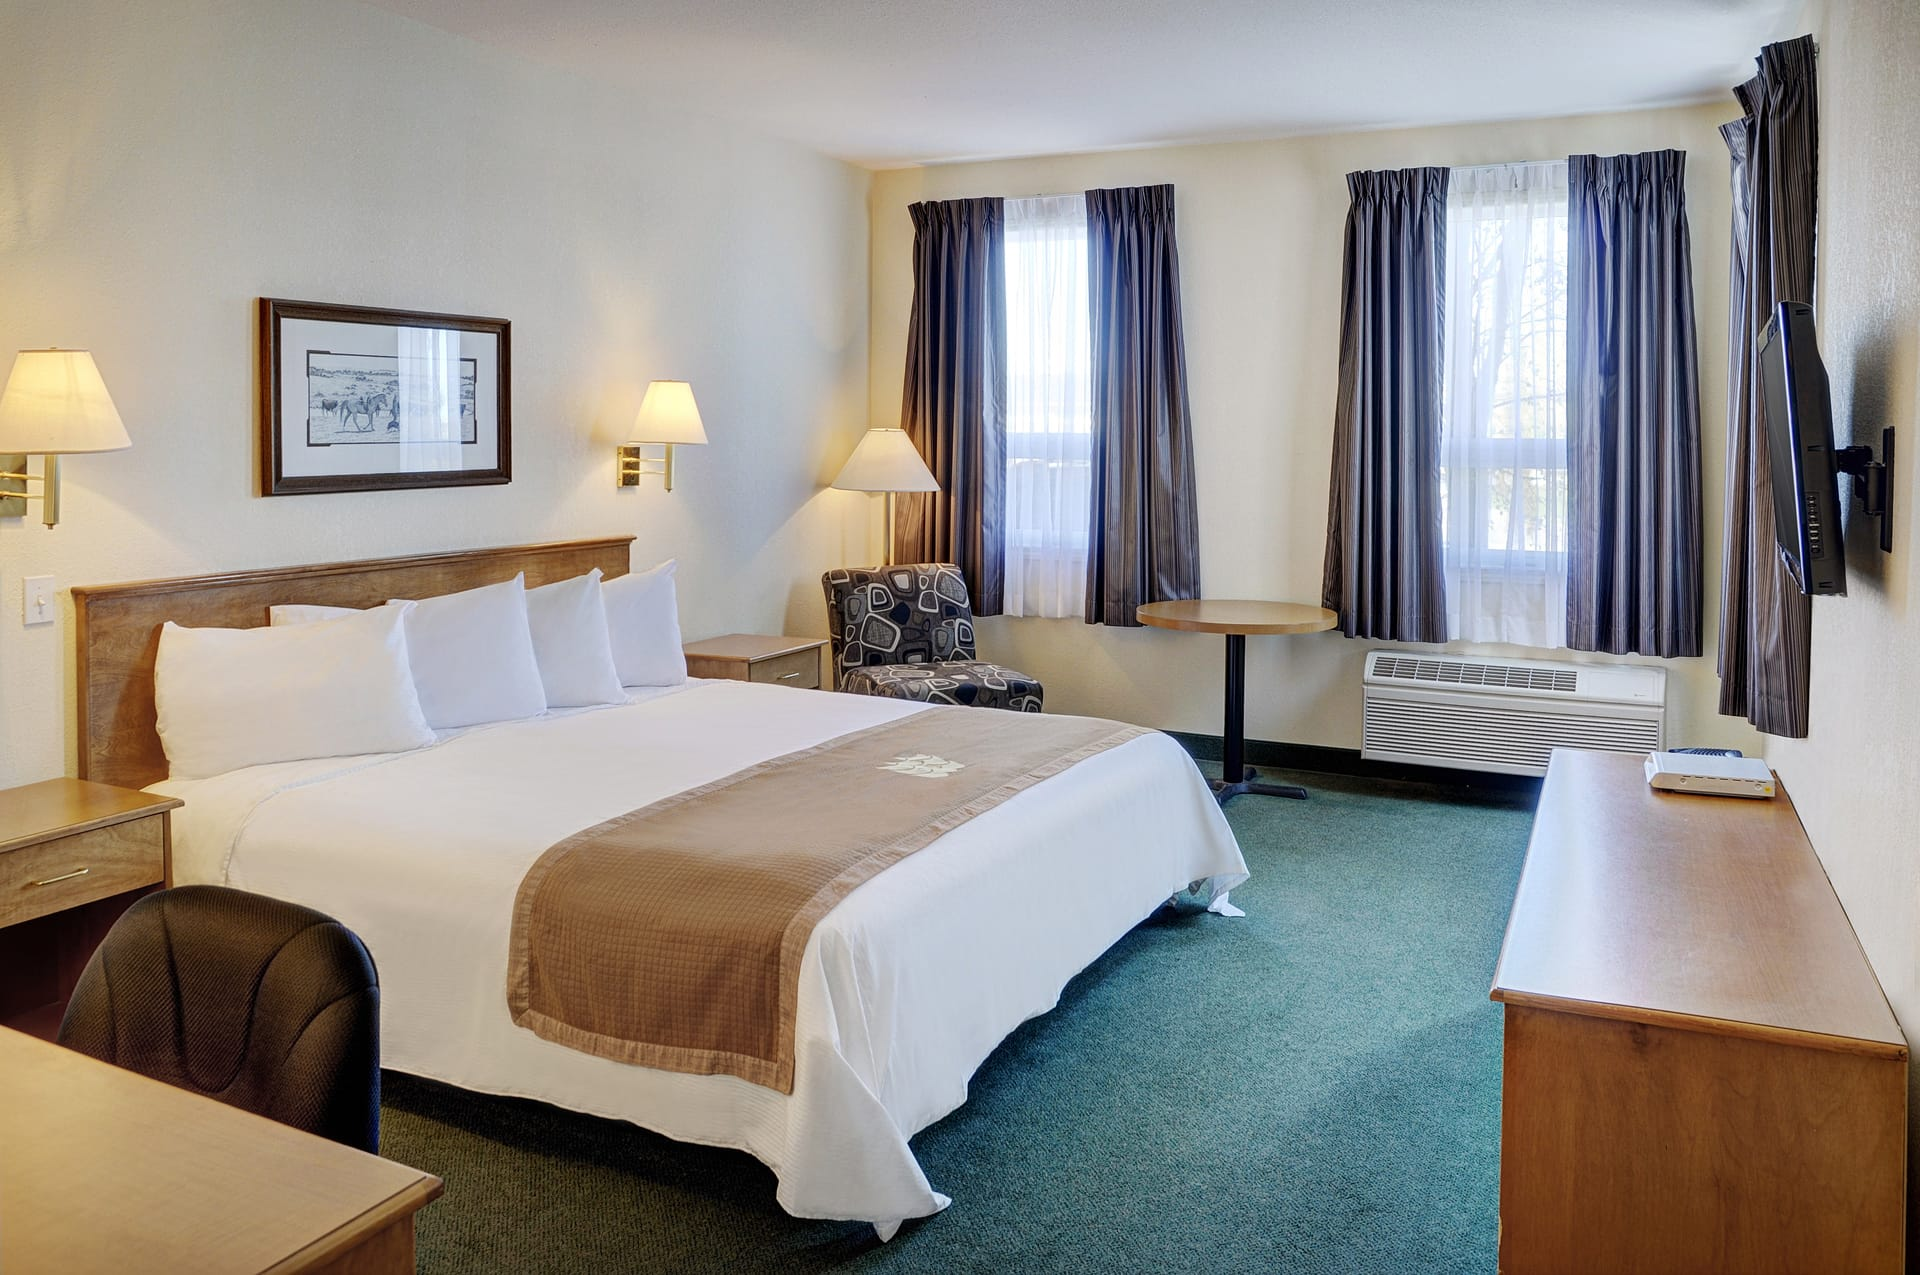 Lakeview Inns & Suites - Okotoks